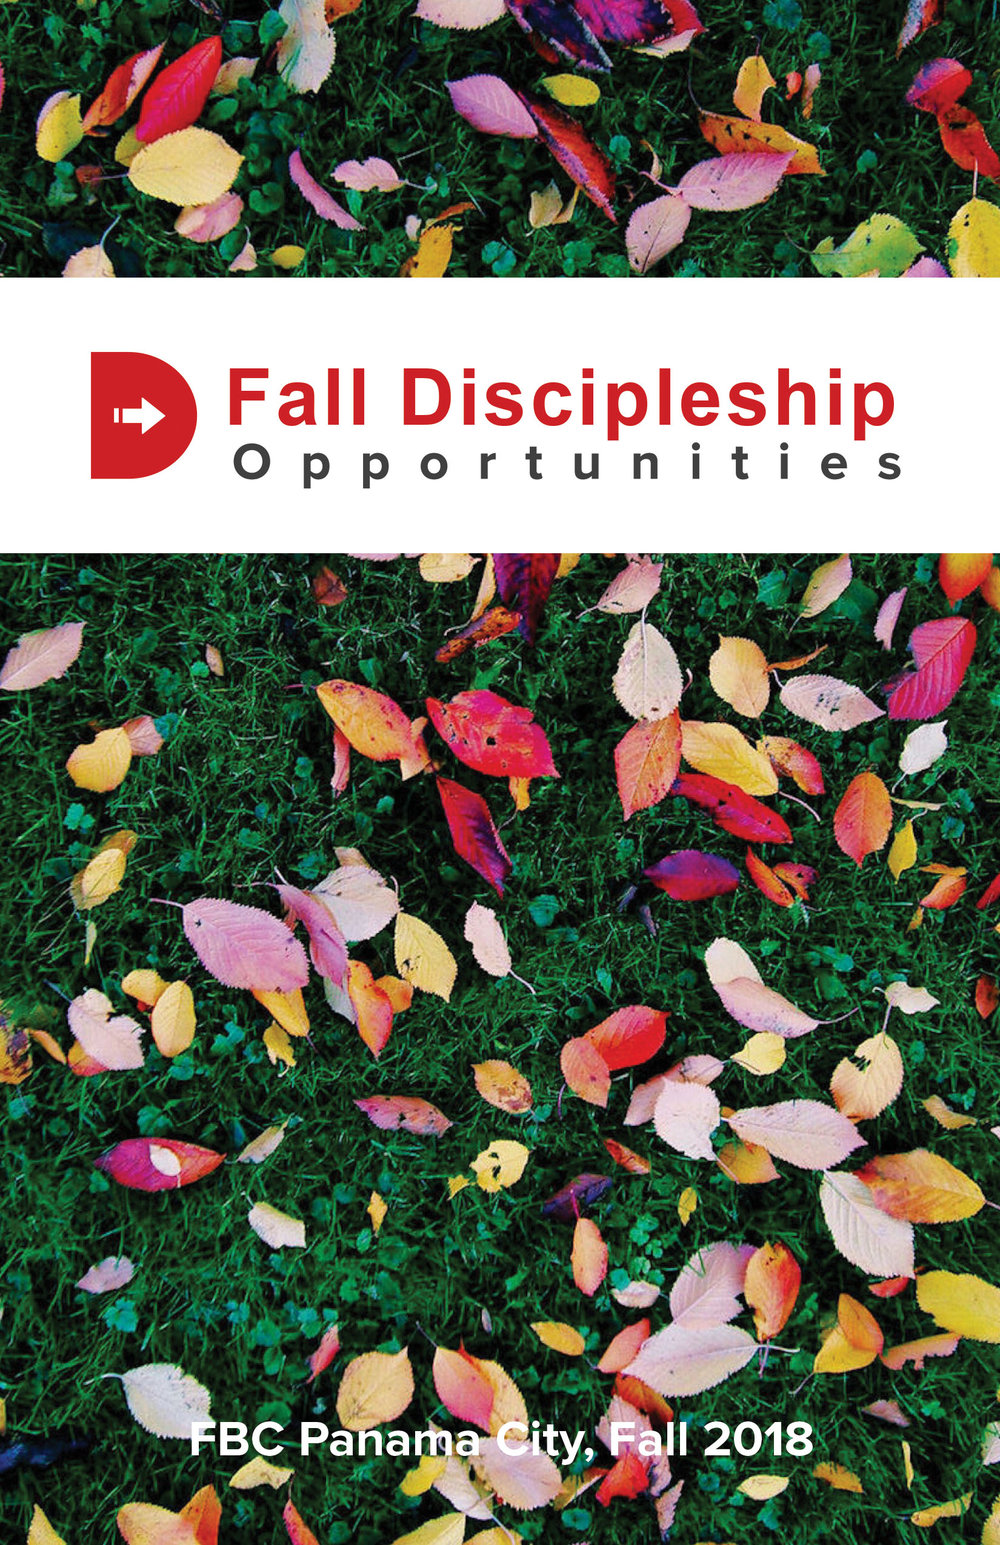 Fall Discipleship Opportunities Book - This book shows our members how they can further their education at FBC. For more information, please contact our Educations Coordinator, Jennifer Sims at jsims@firstbaptistpc.com.